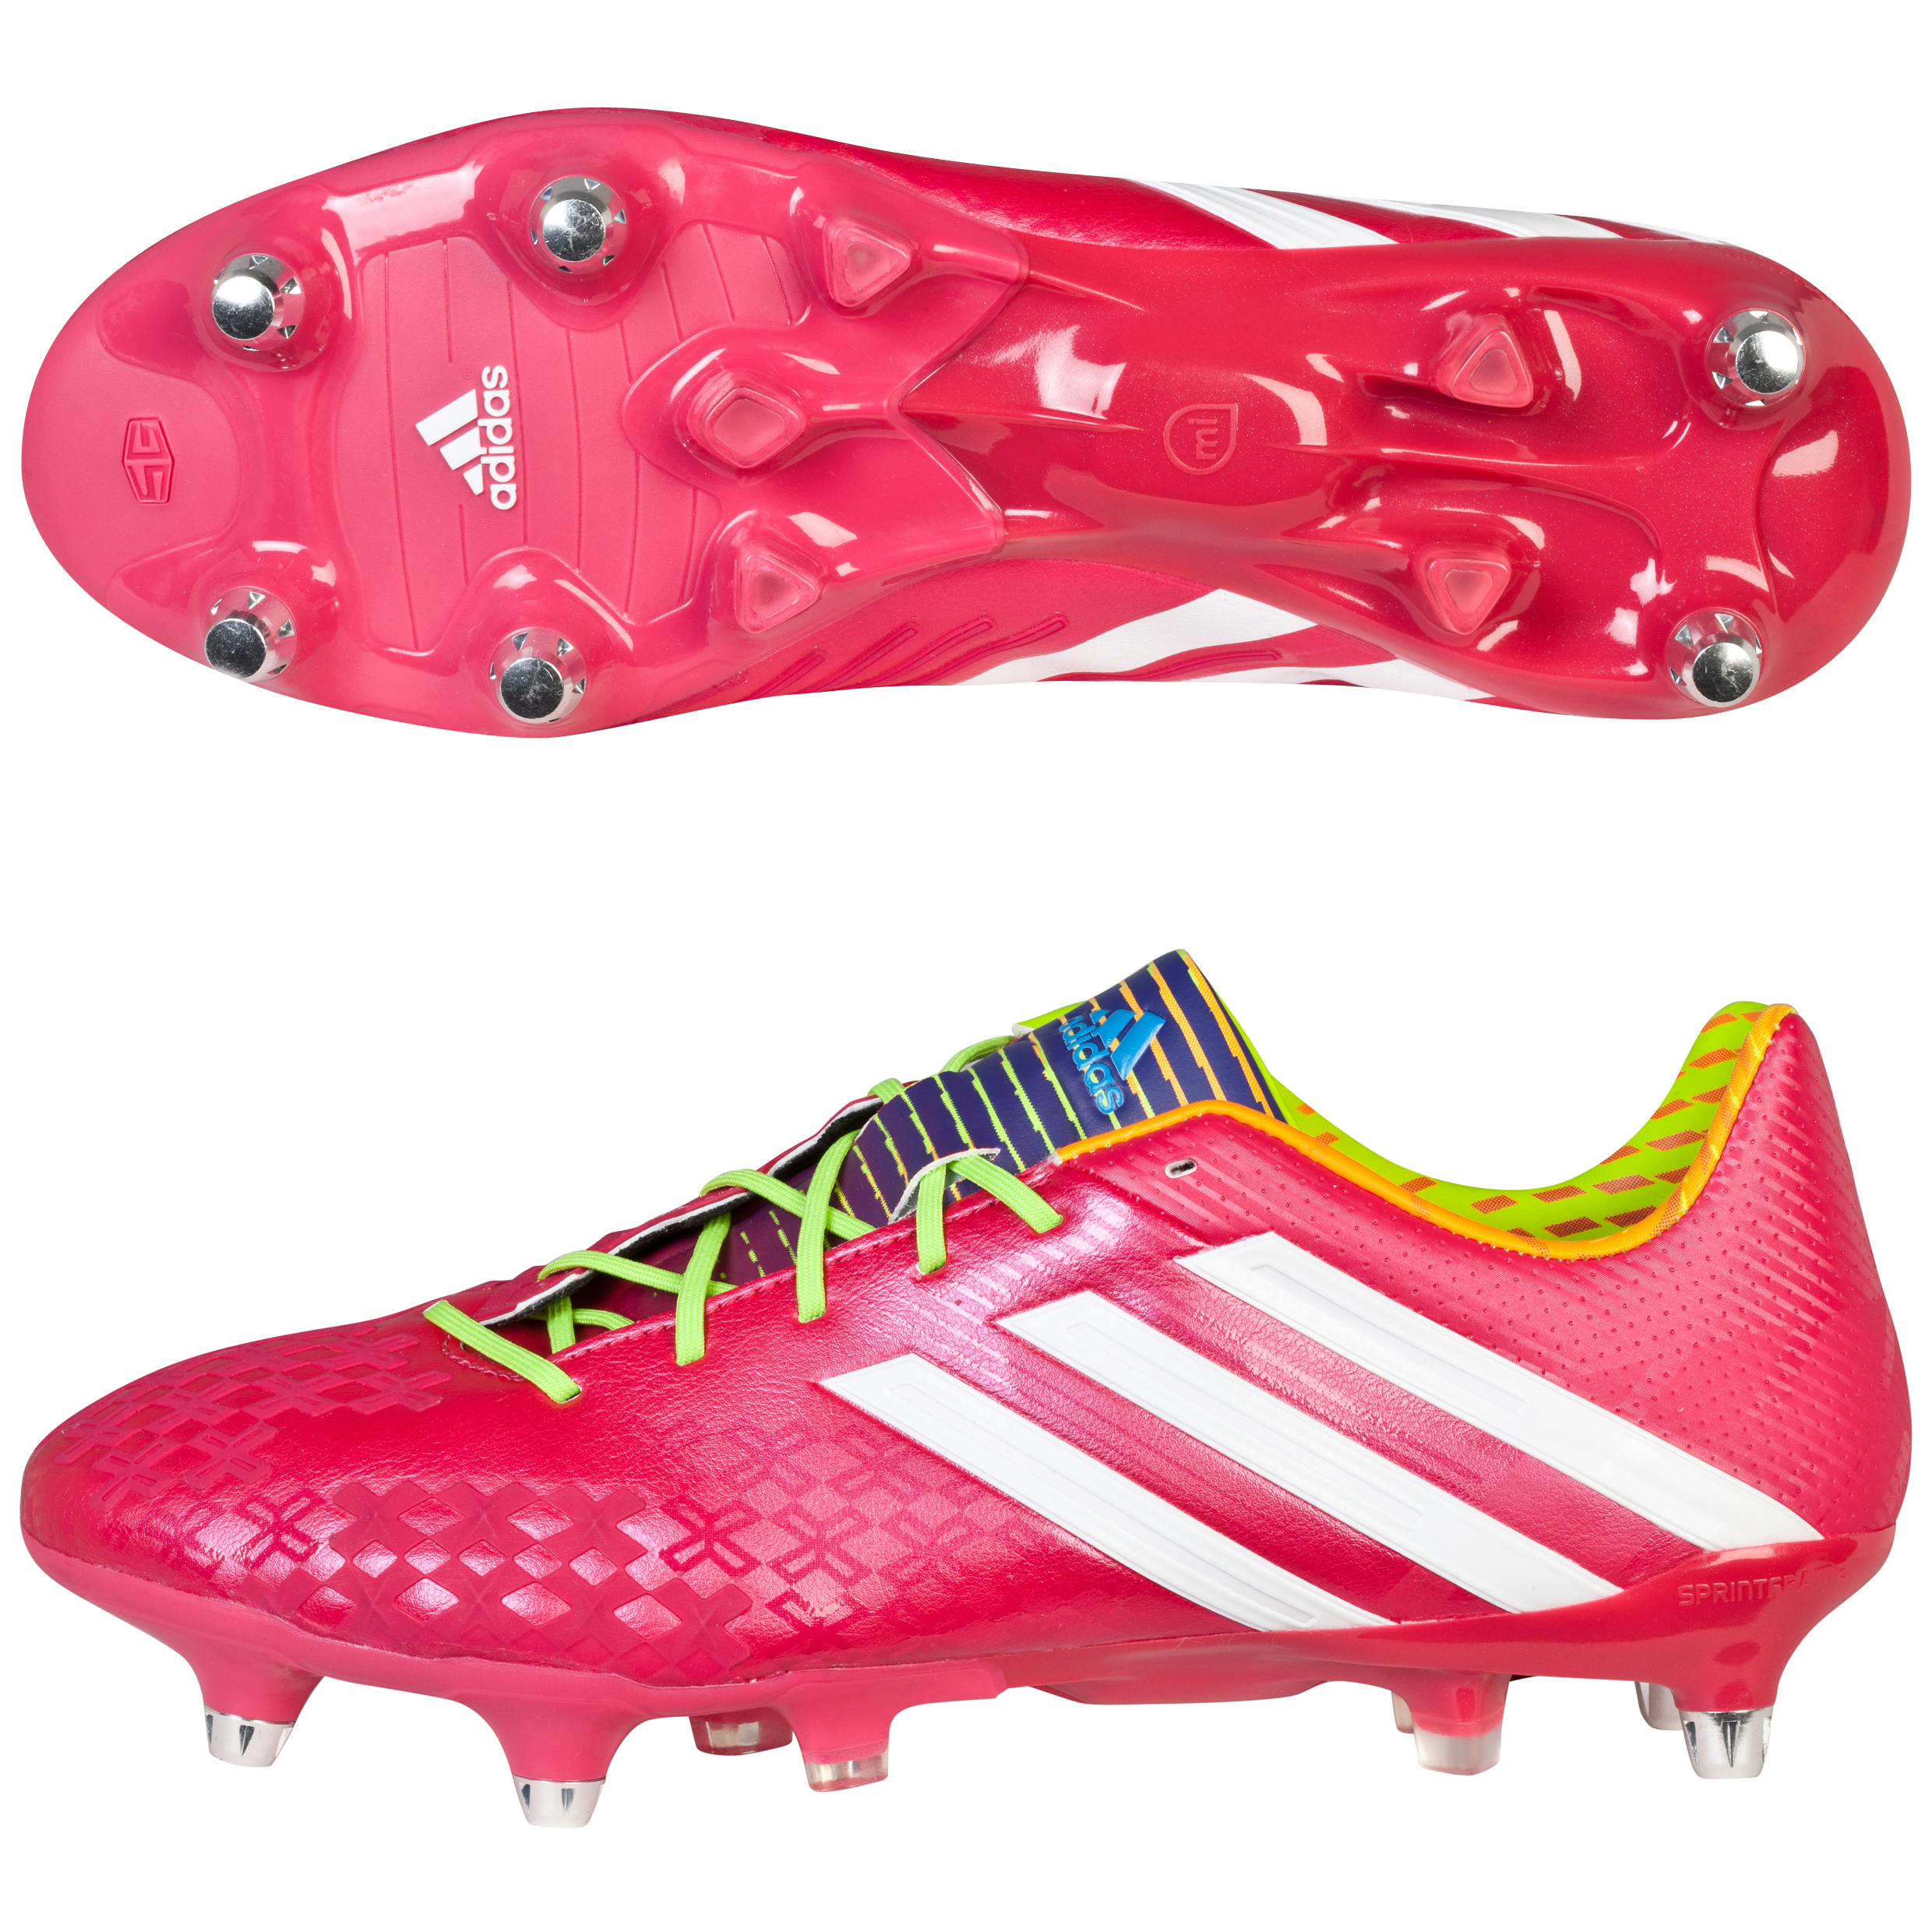 Adidas Predator LZ XTRX Soft Ground Football Boots Pink